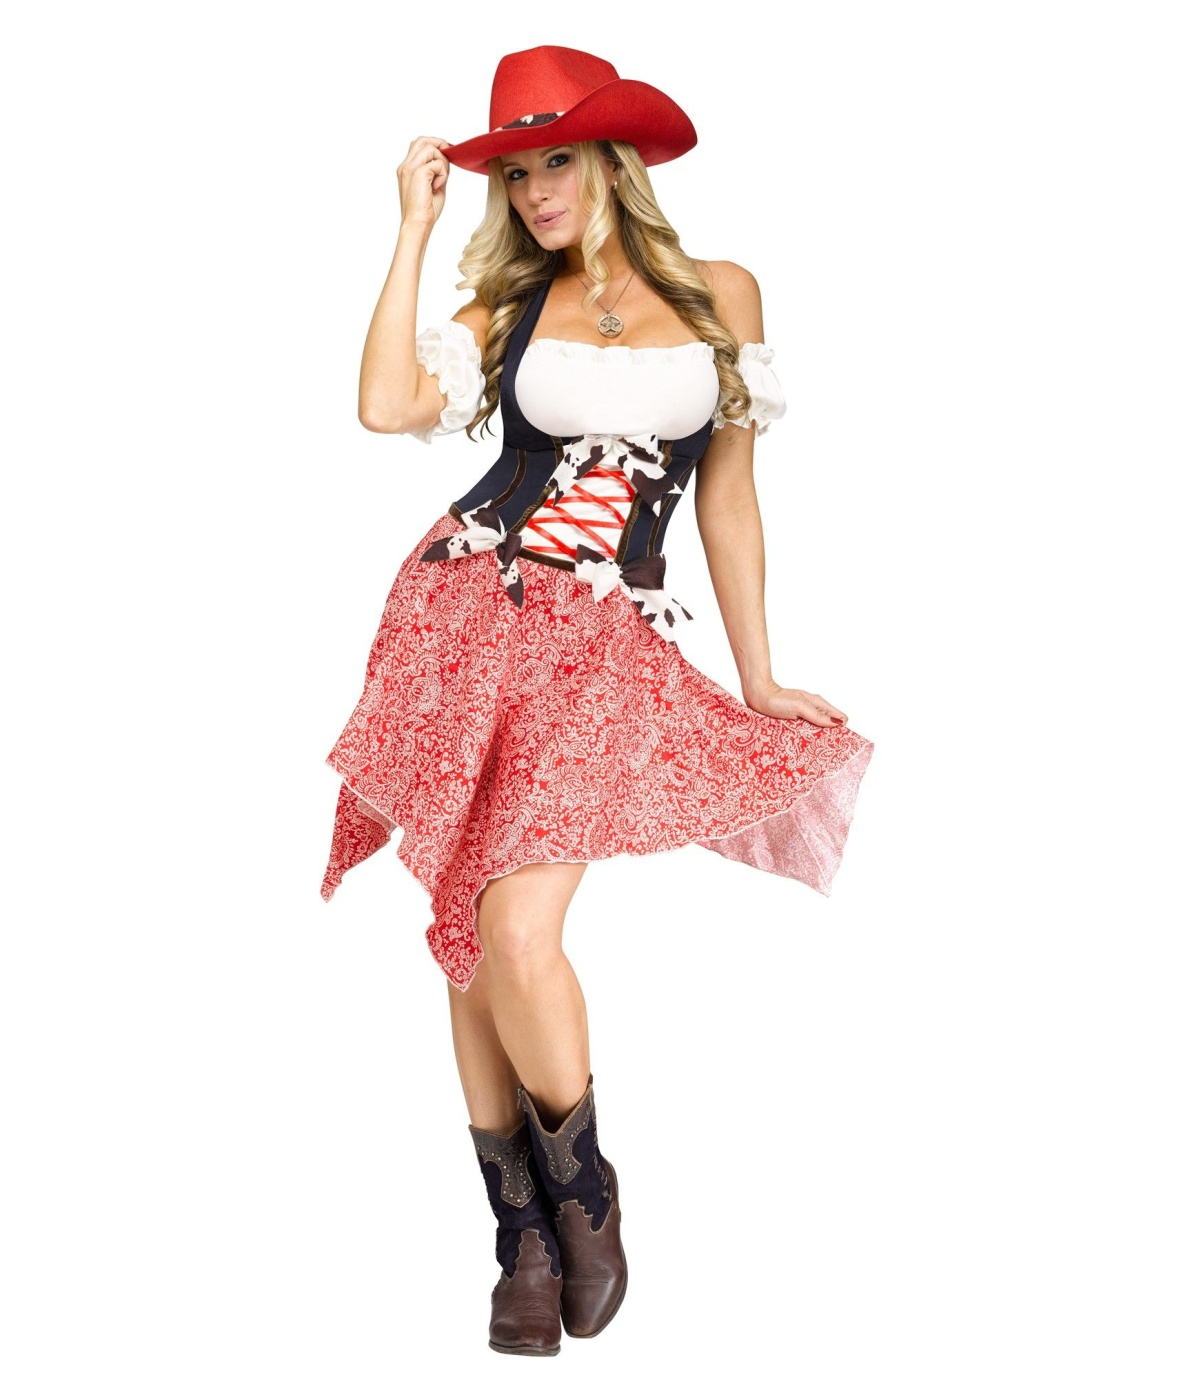 sc 1 st  Halloween Costumes : lady cowboy costume  - Germanpascual.Com